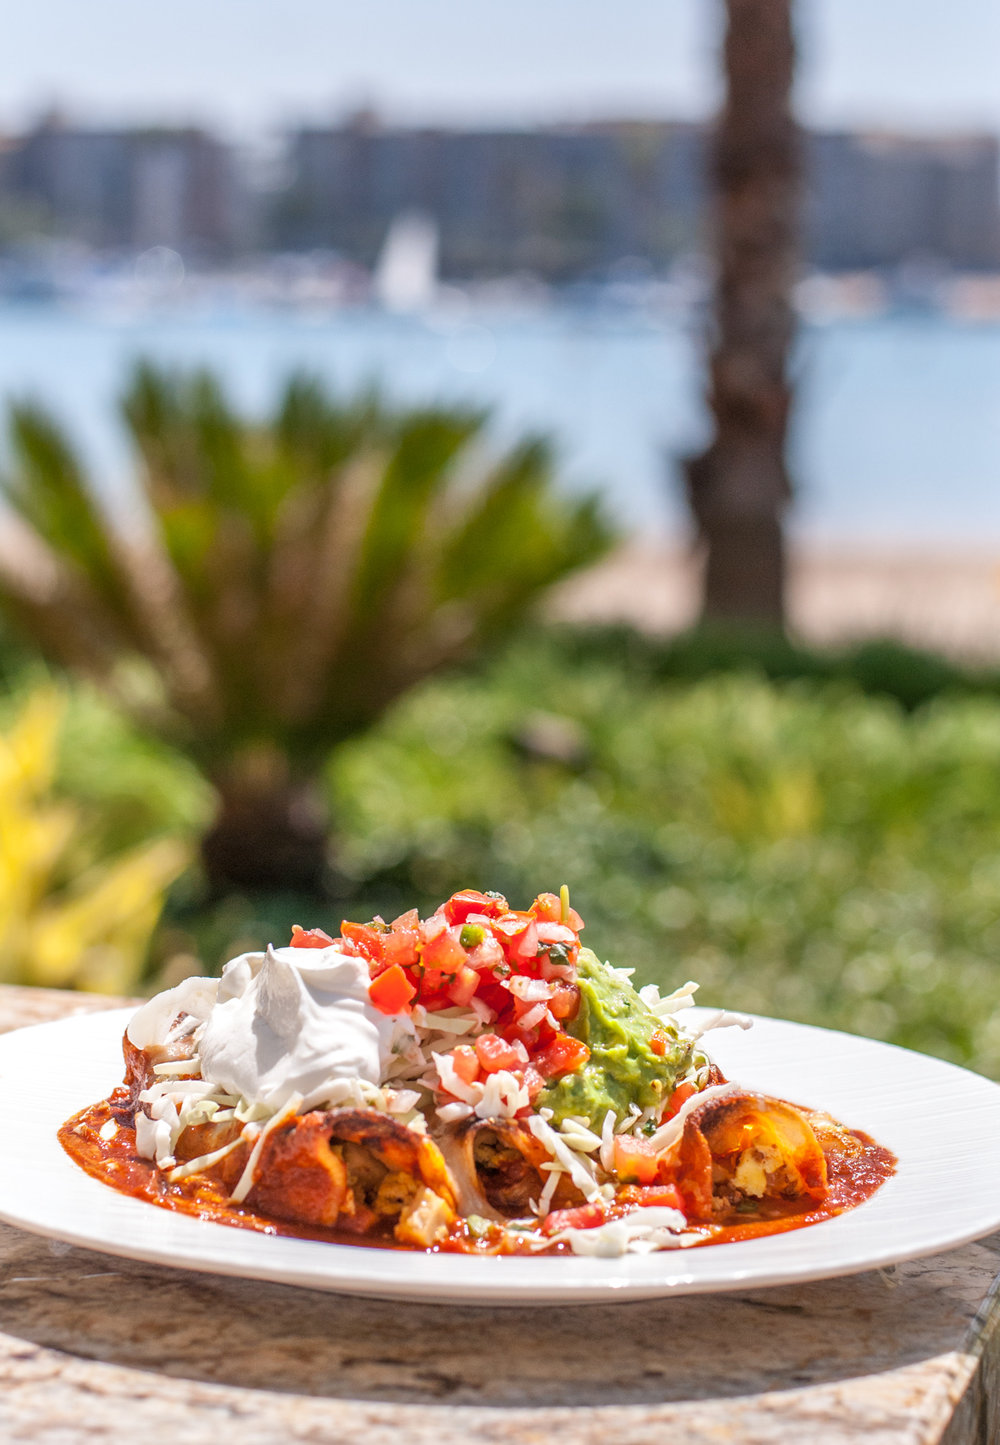 Breakfast Enchiladas at Beachside Restaurant & Bar, Marina del Rey, CA